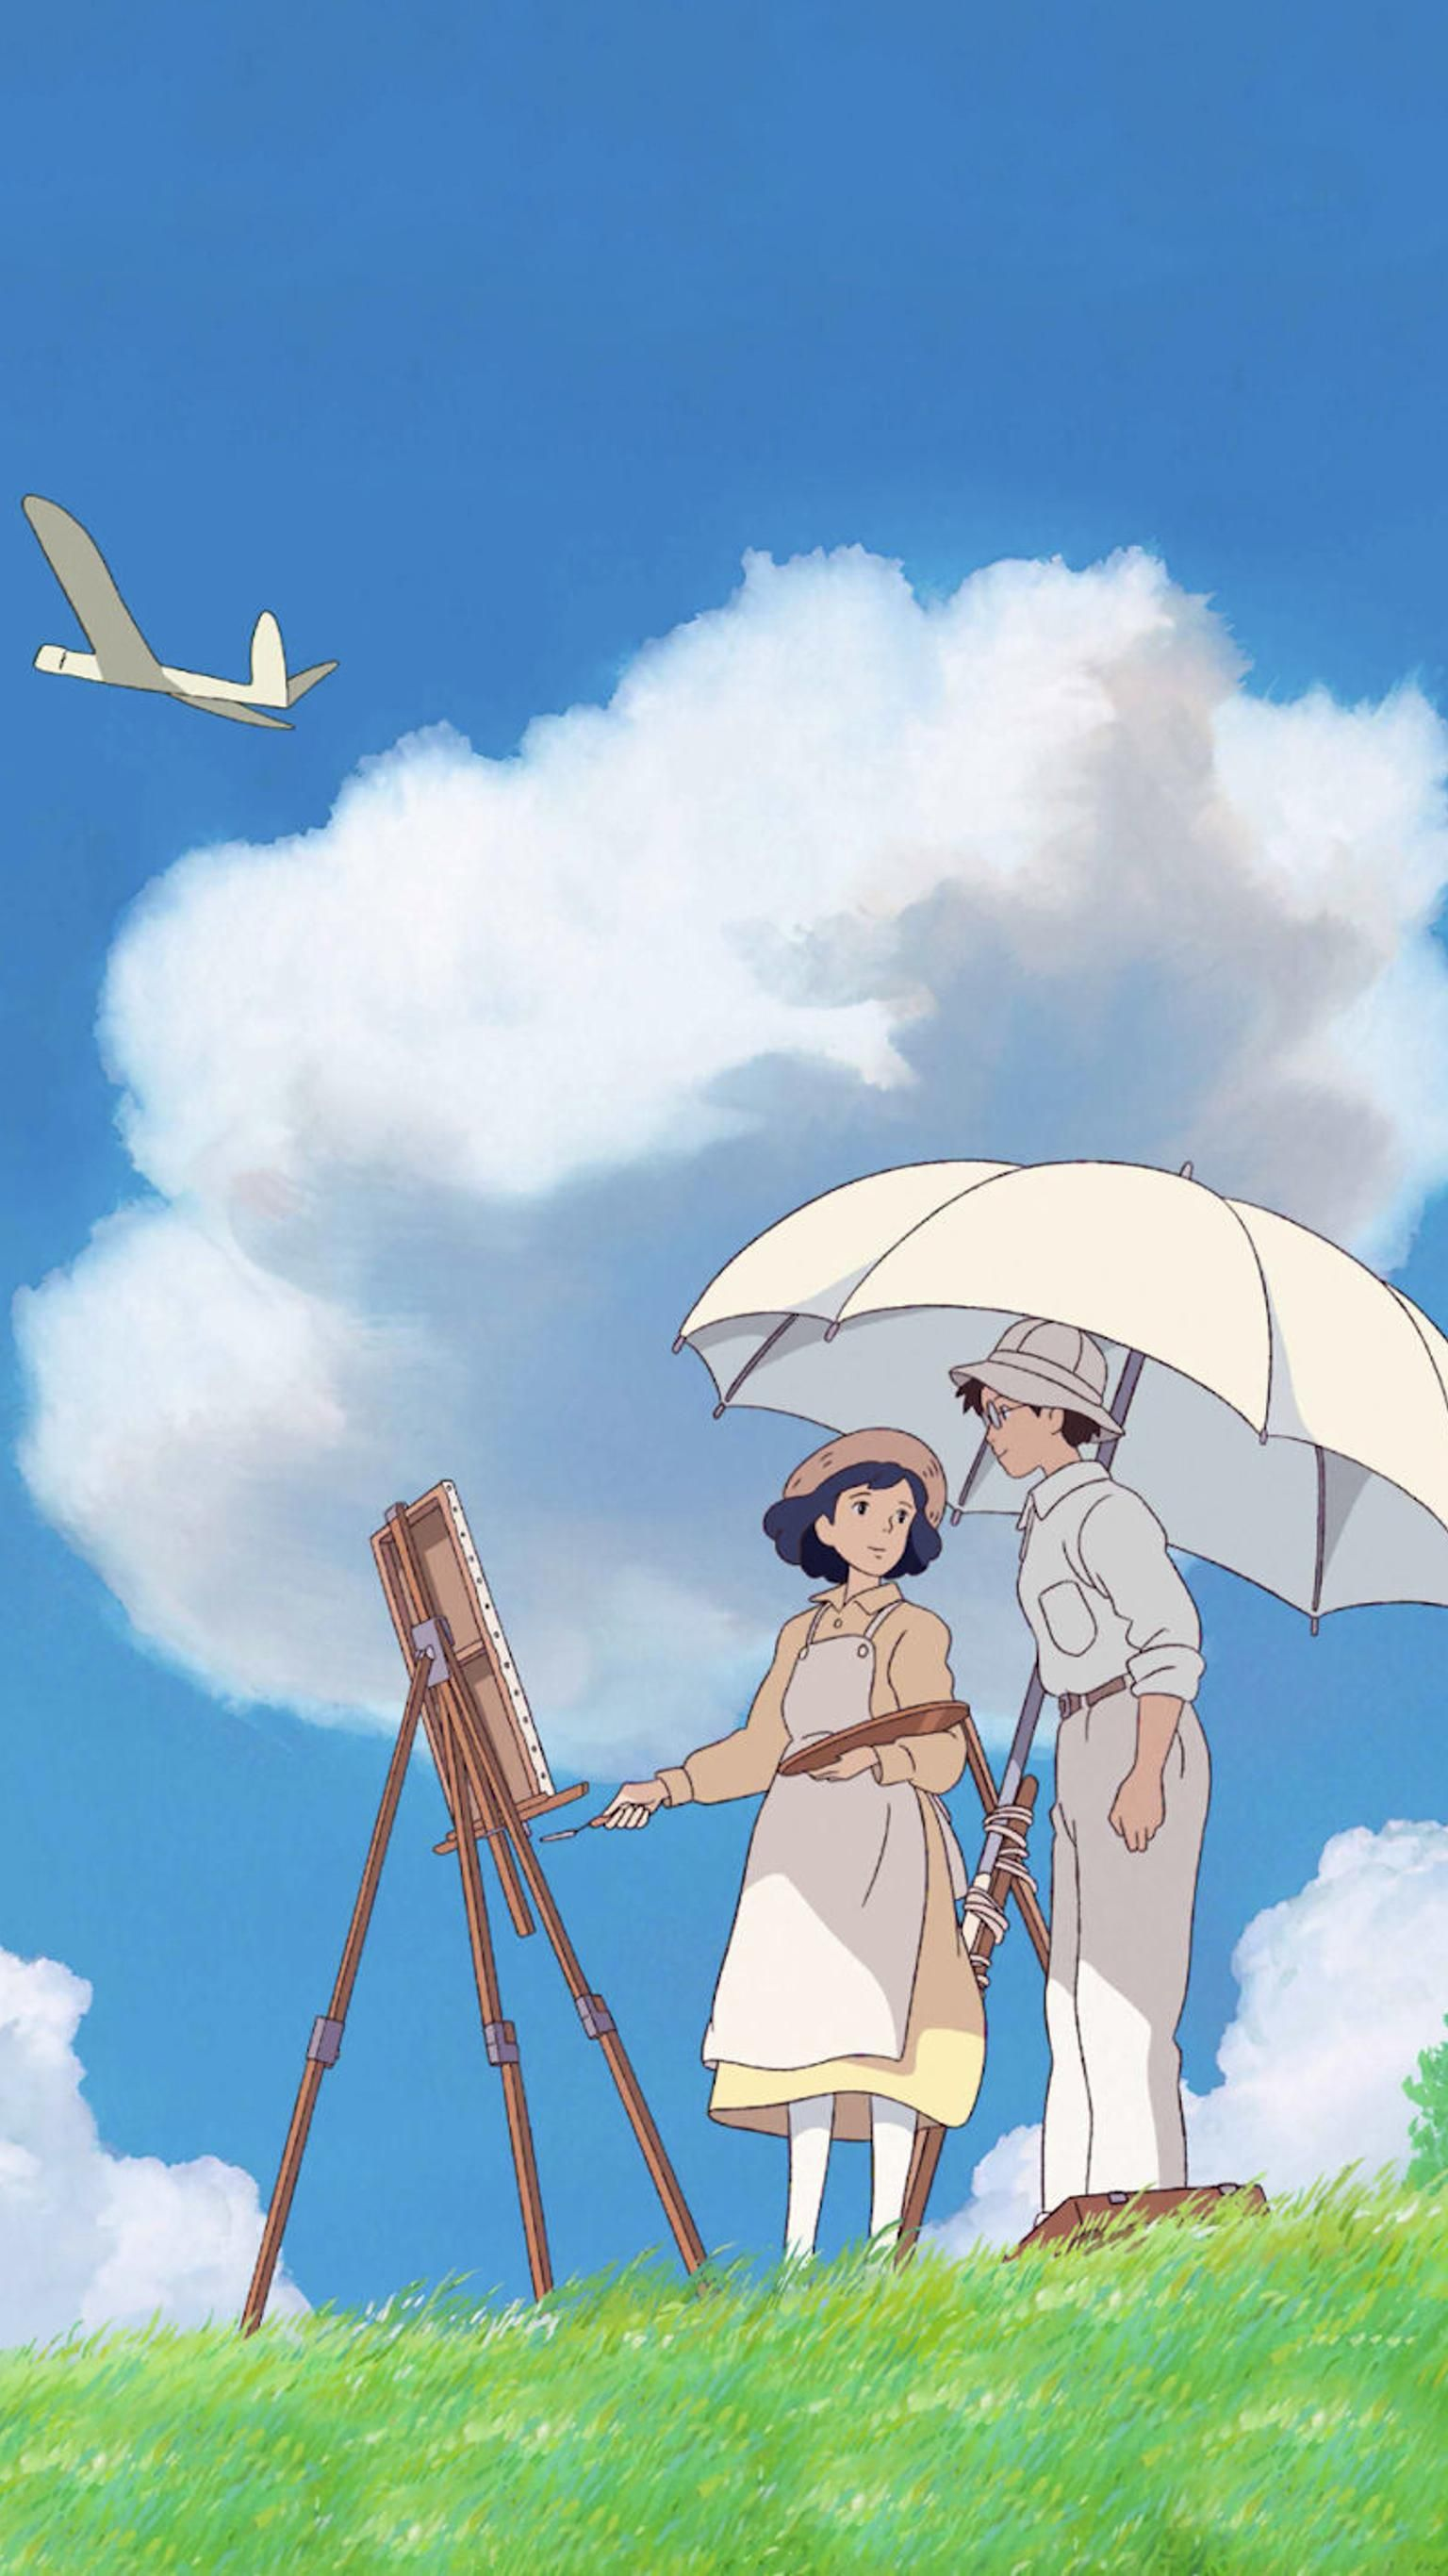 The Wind Rises 2013 Phone Wallpaper 2020 アニメの風景